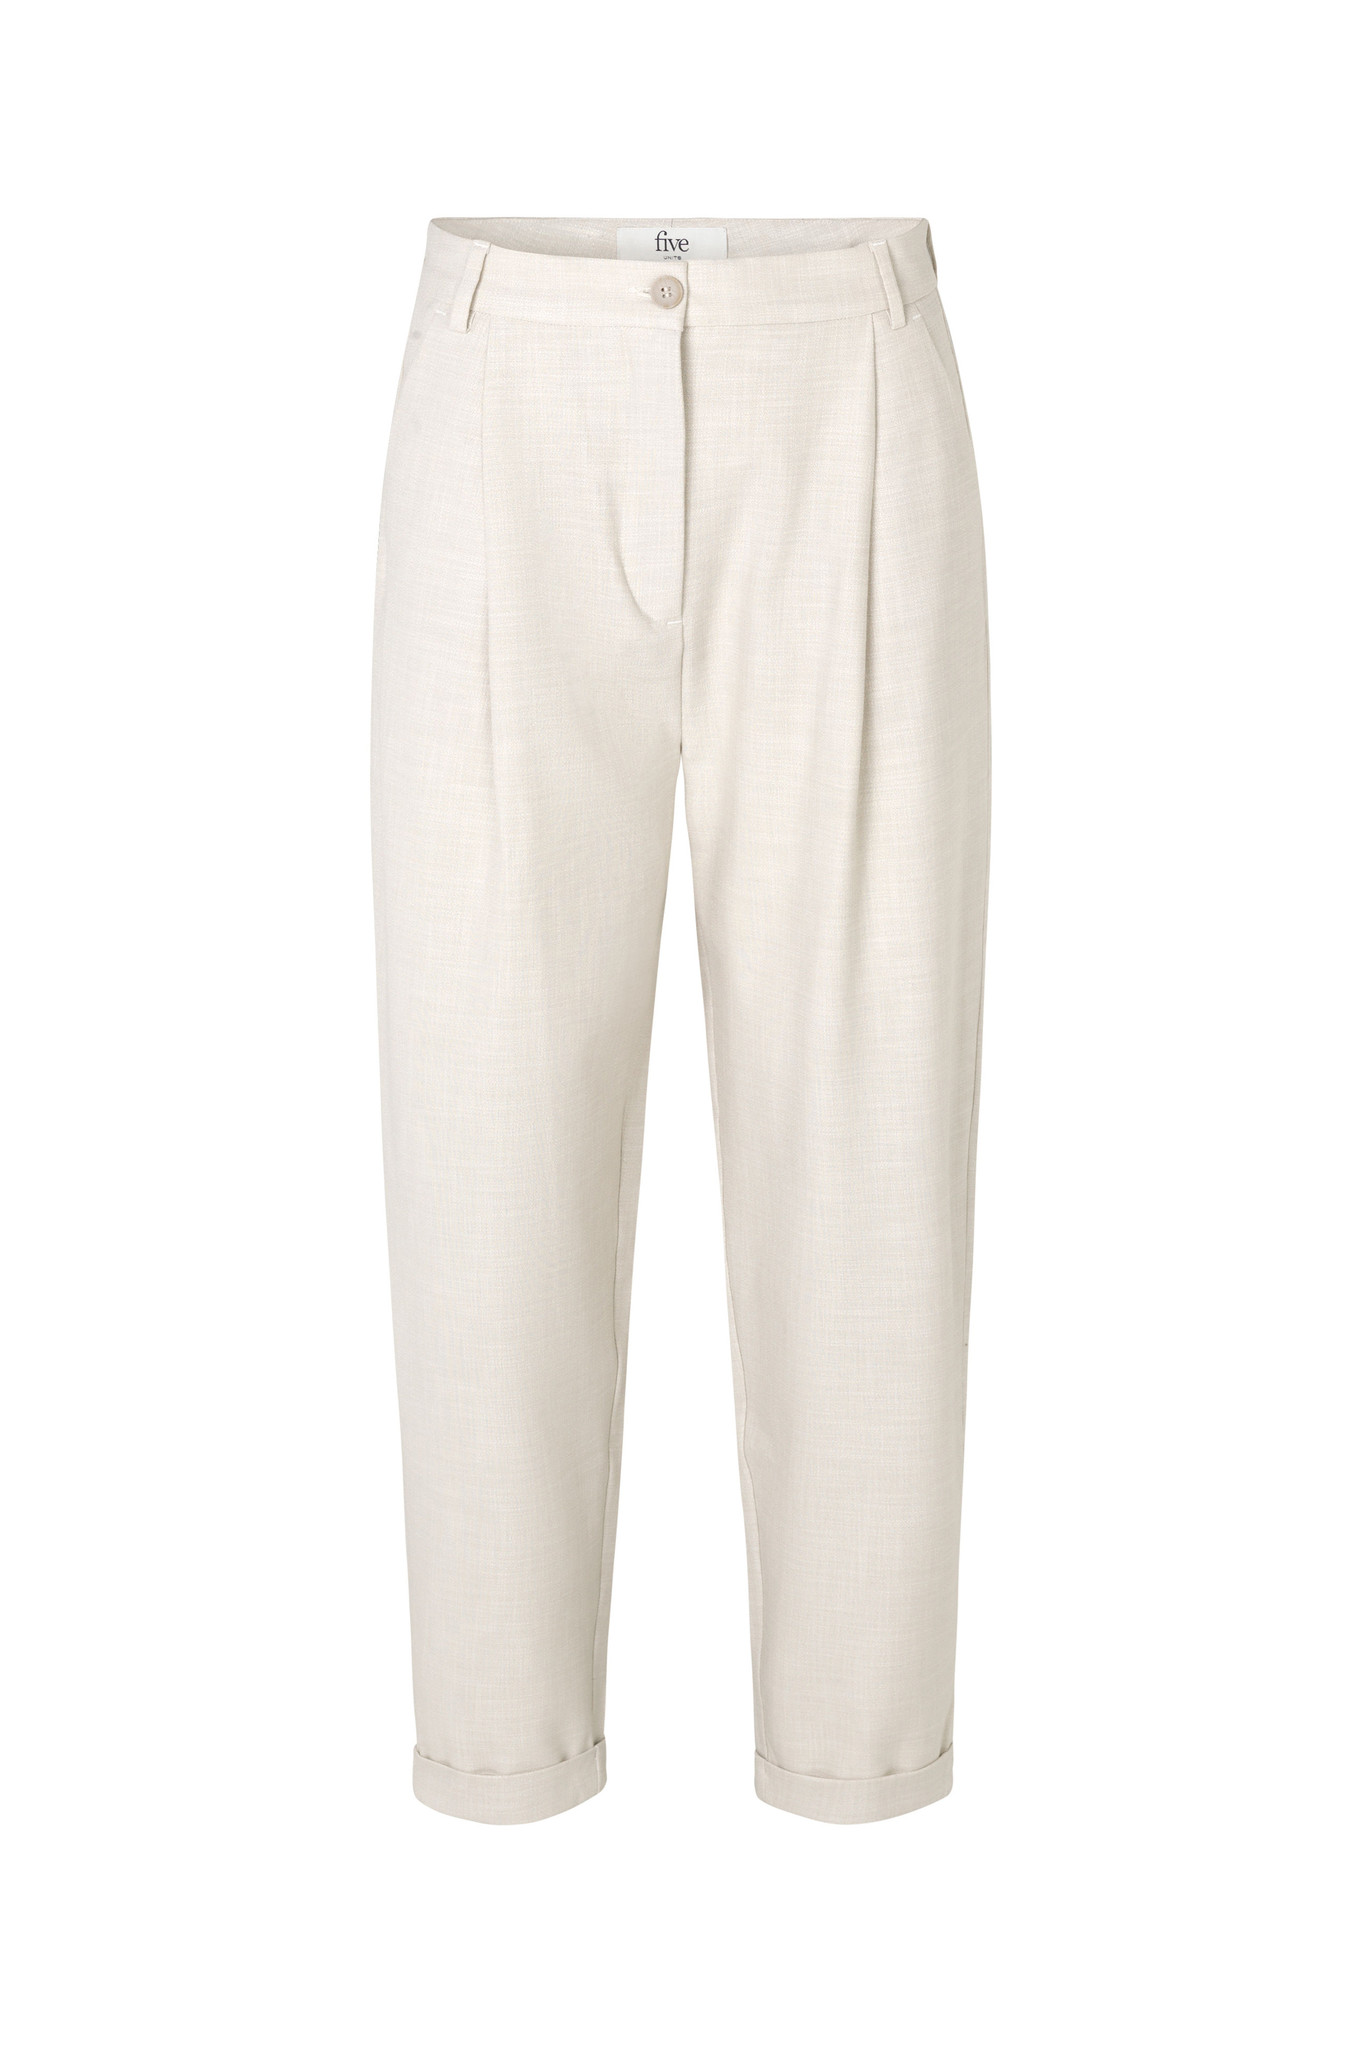 Malou Slash 396 Trouser - Moonbeam Melange-1